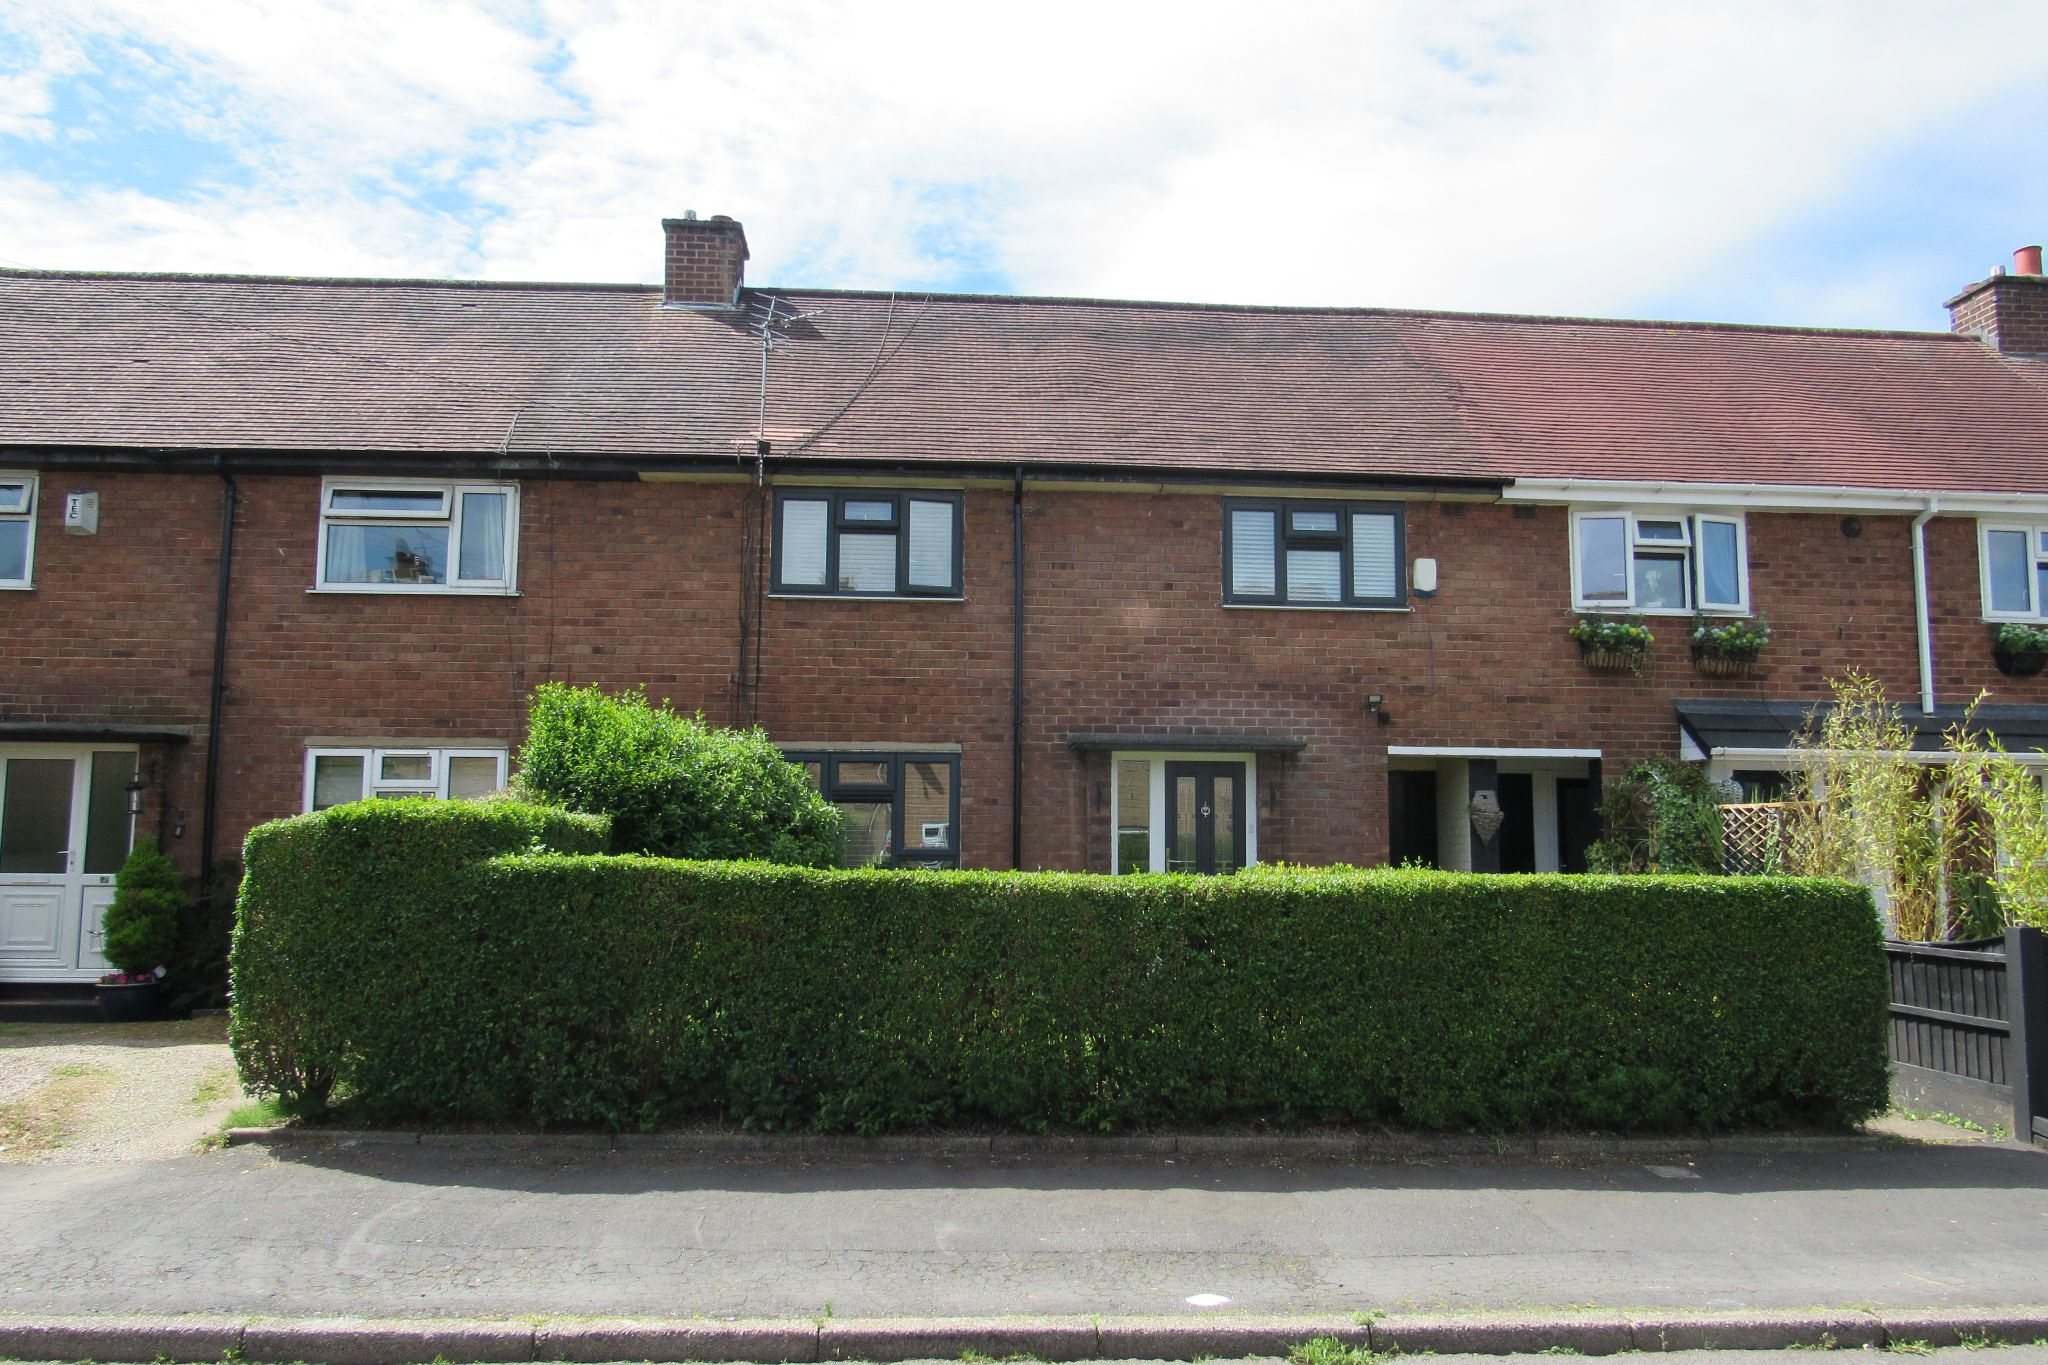 3 bedroom mid terraced house SSTC in Altrincham - Photograph 16.